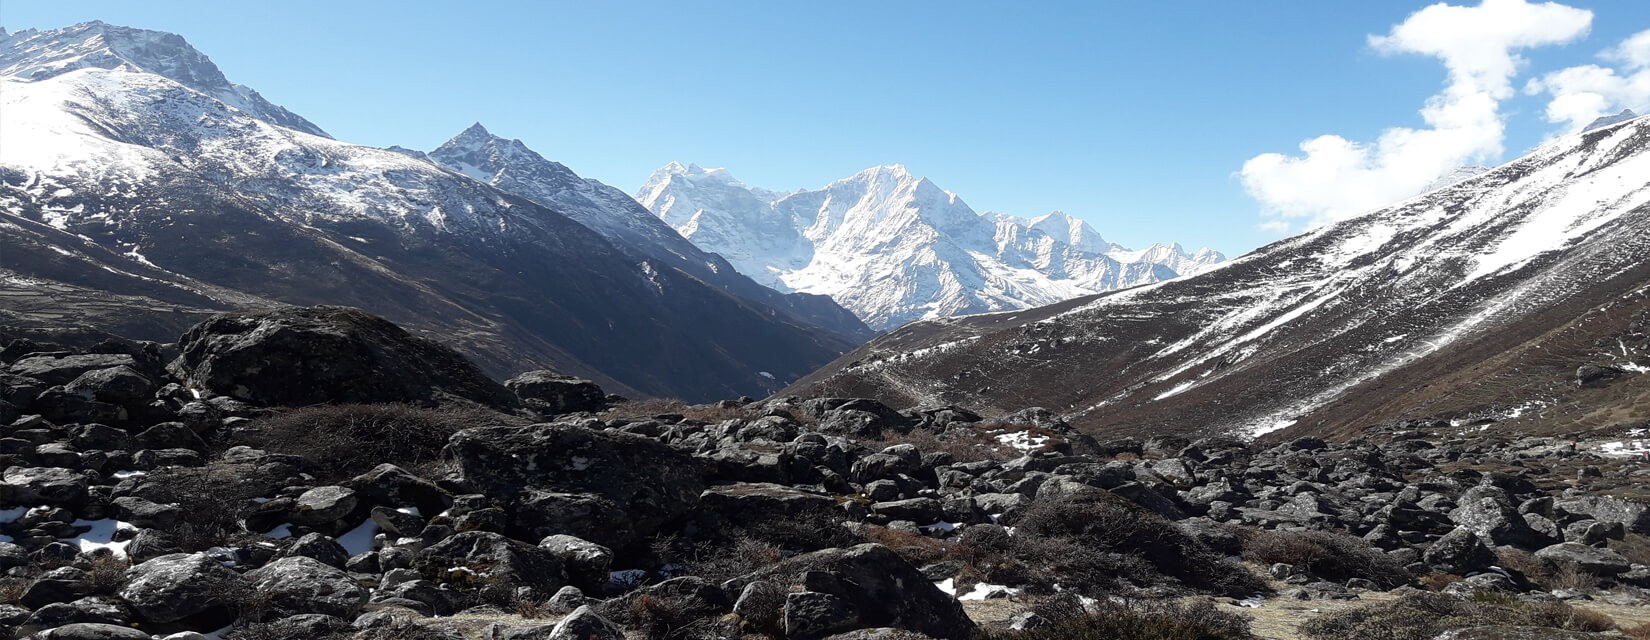 Cho la pass - Everest